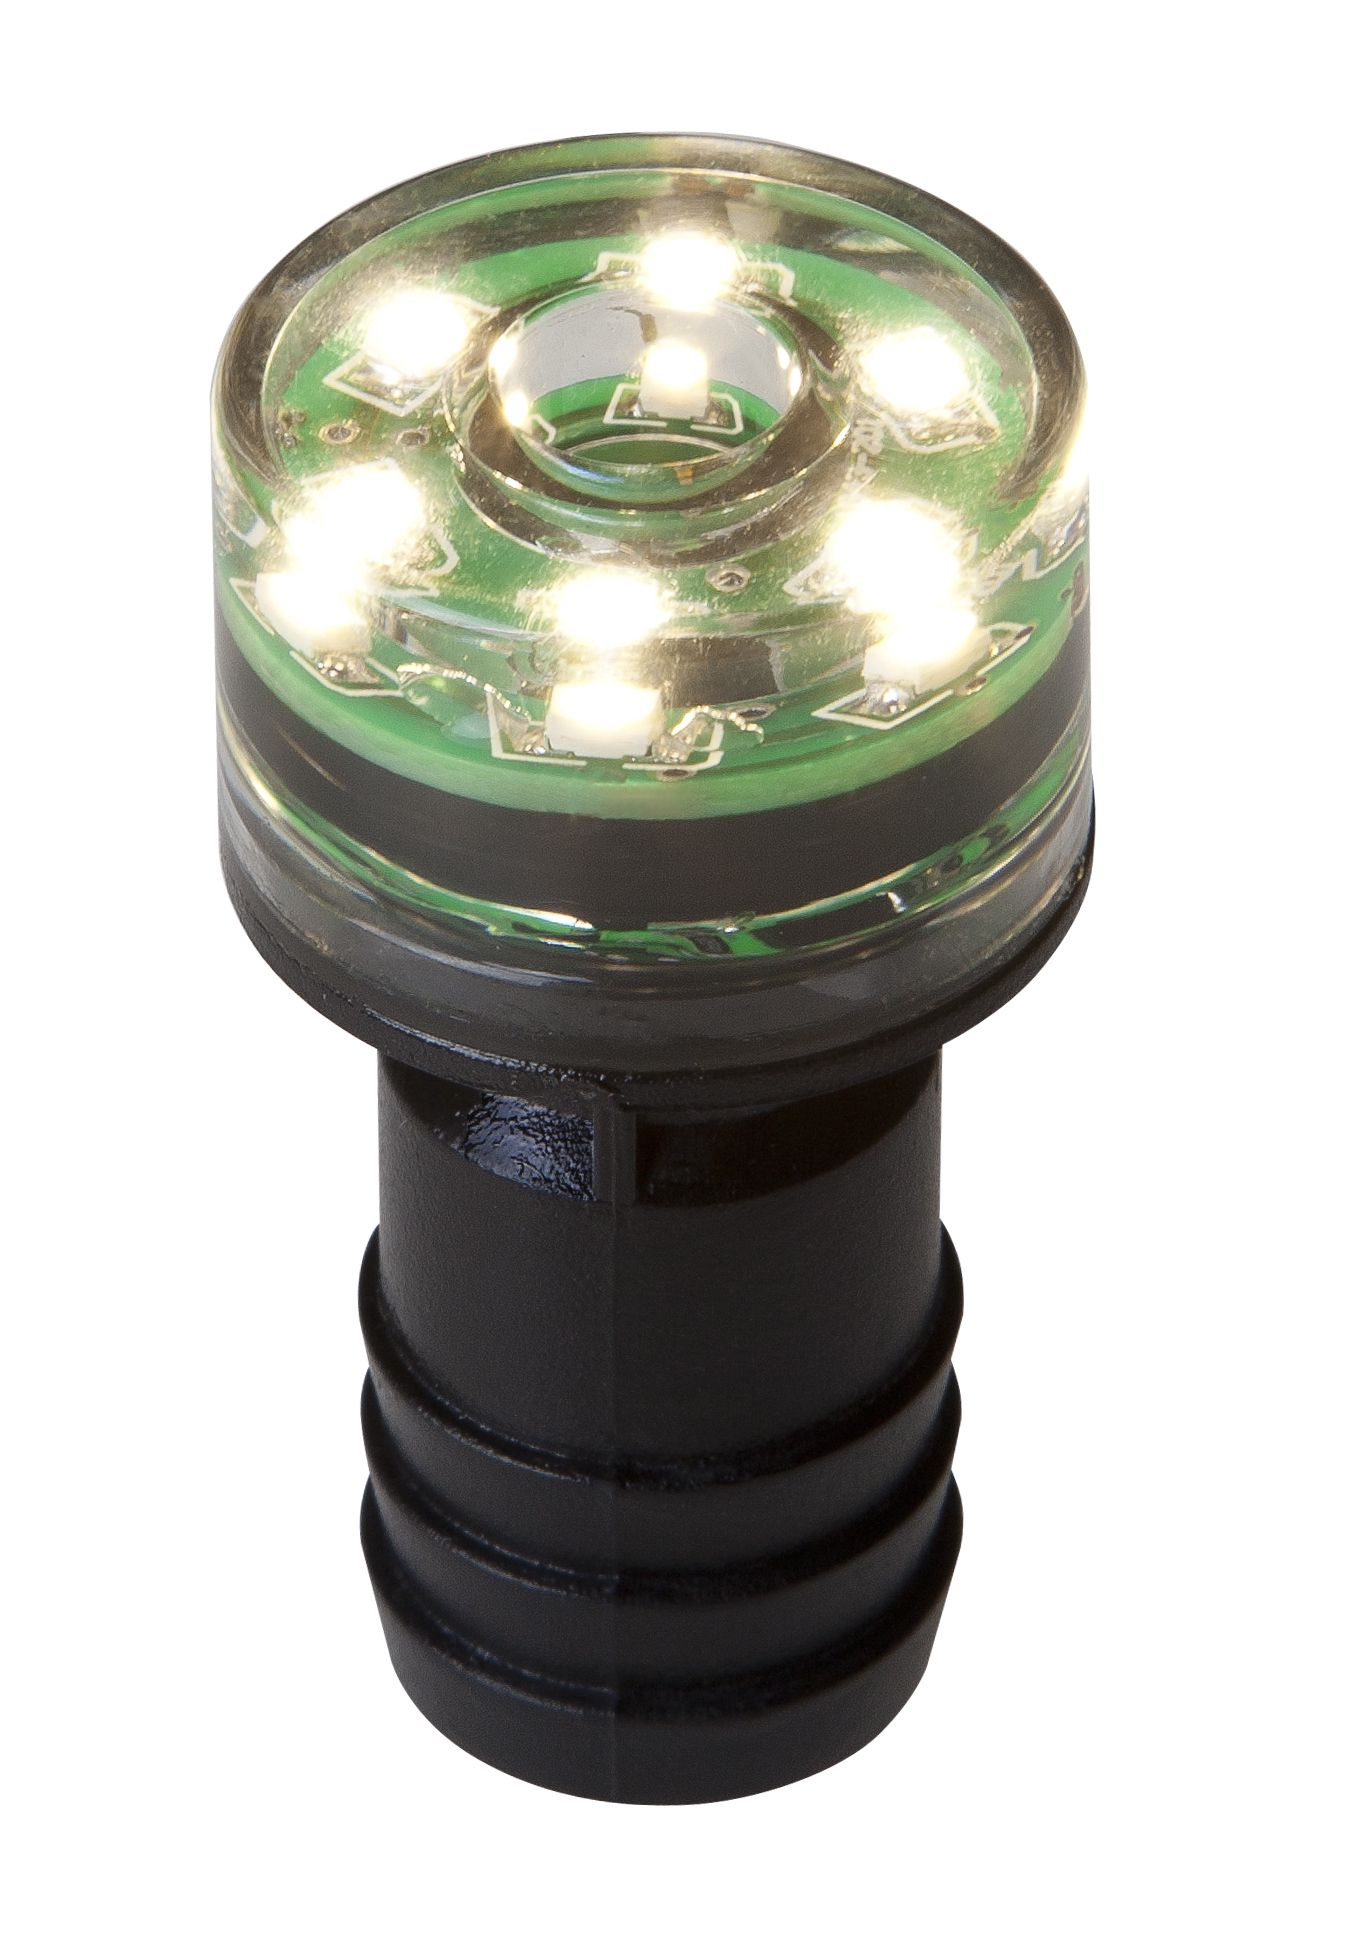 Garden Lights LED Fontana kopen? Waterornament Lamp Online Winkel